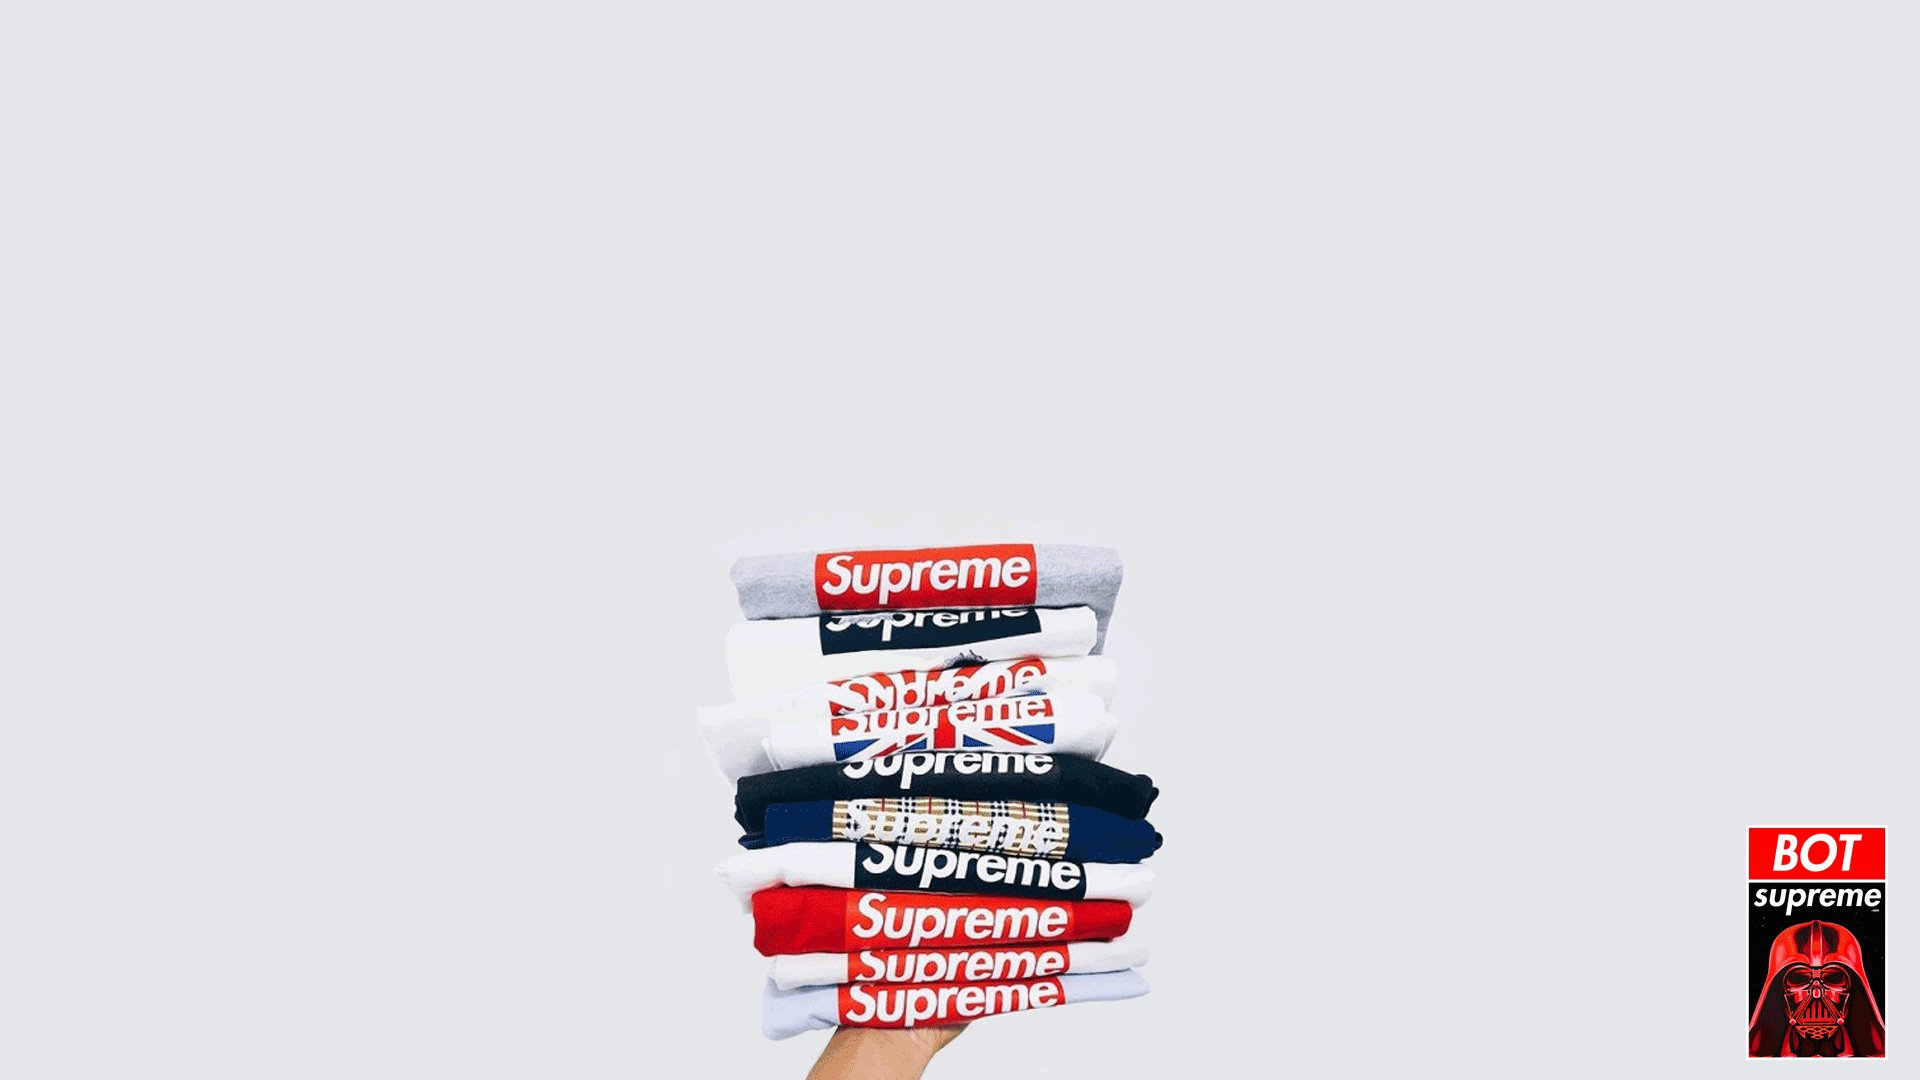 17 Supreme Hd Wallpapers Background Images Wallpaper Abyss